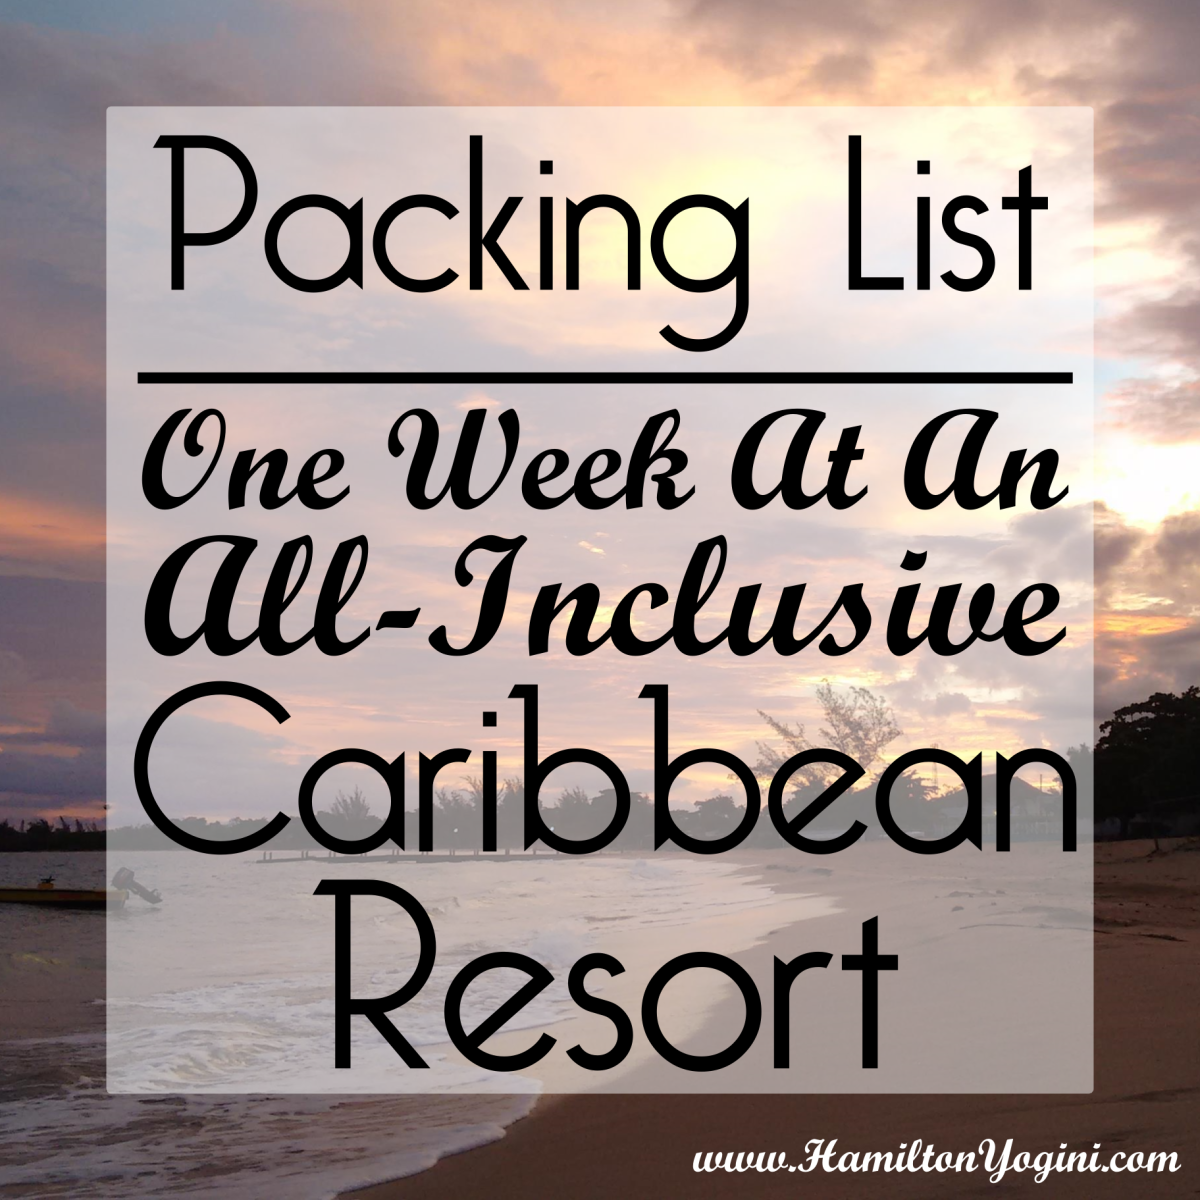 Packing List – One Week at an All-Inclusive Caribbean Resort